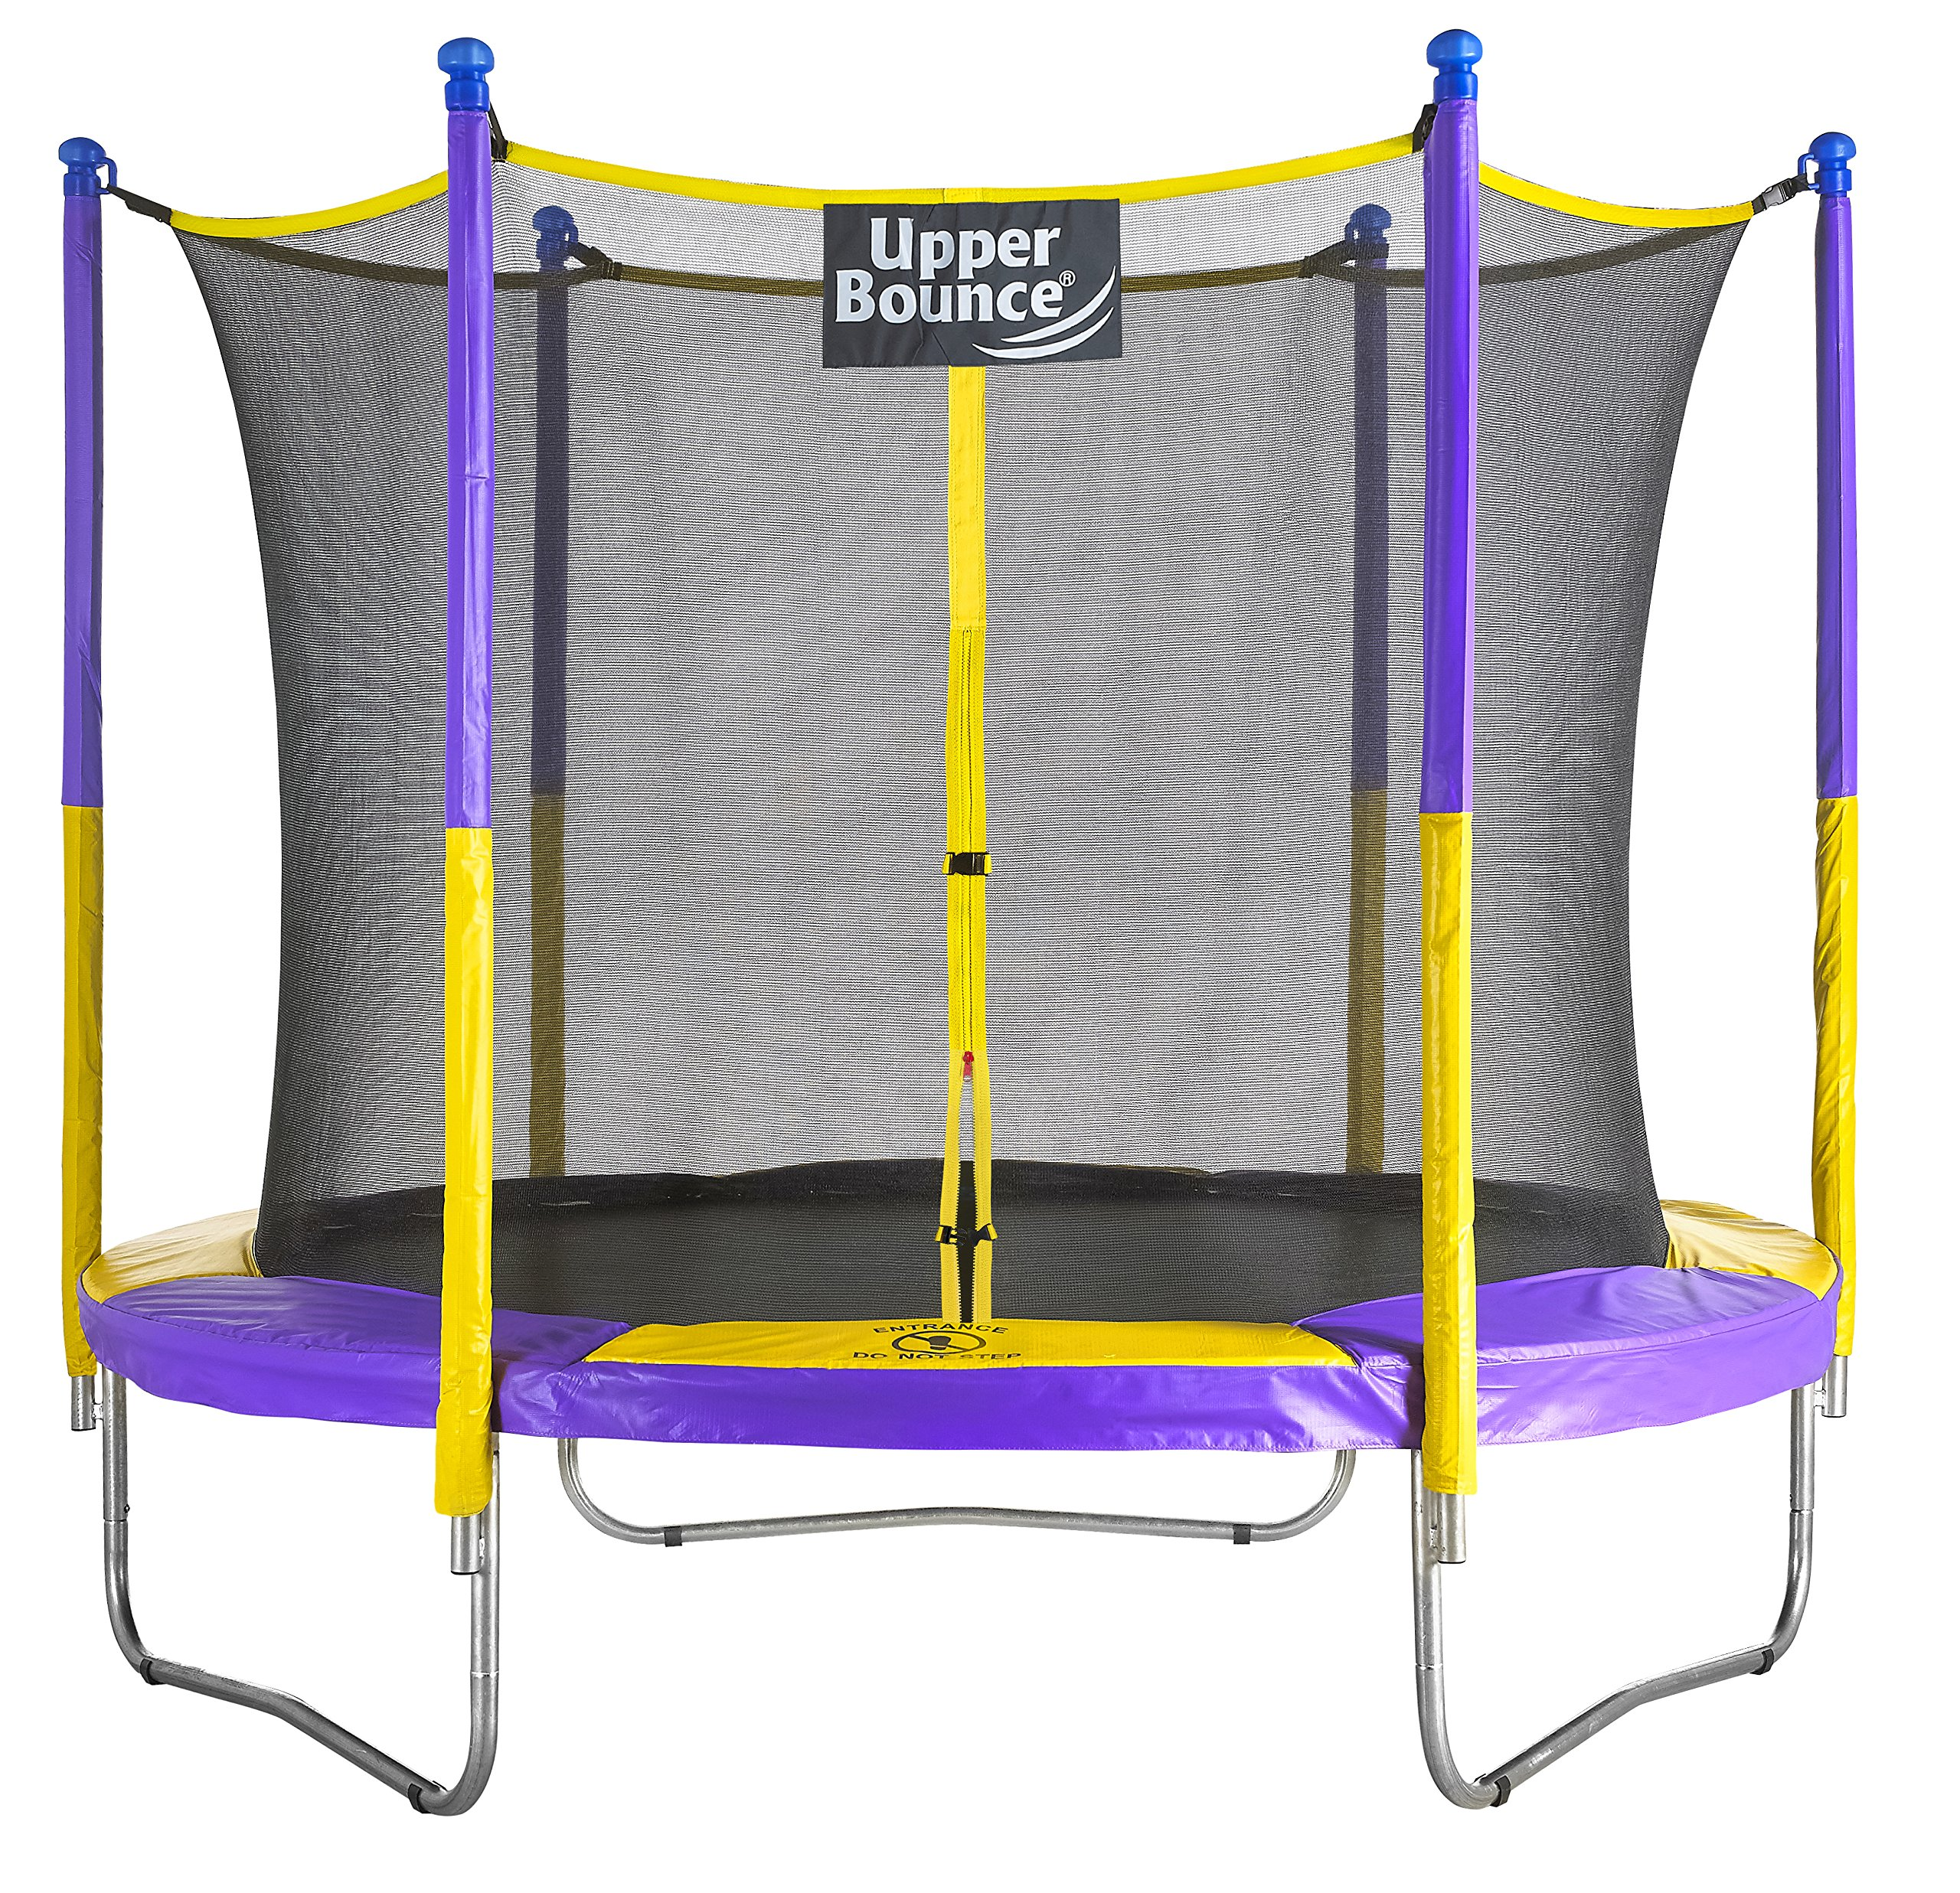 Upper Bounce UB03EC-09E 9'. Trampoline & Enclosure Set Equipped with The New Easy Assemble Feature